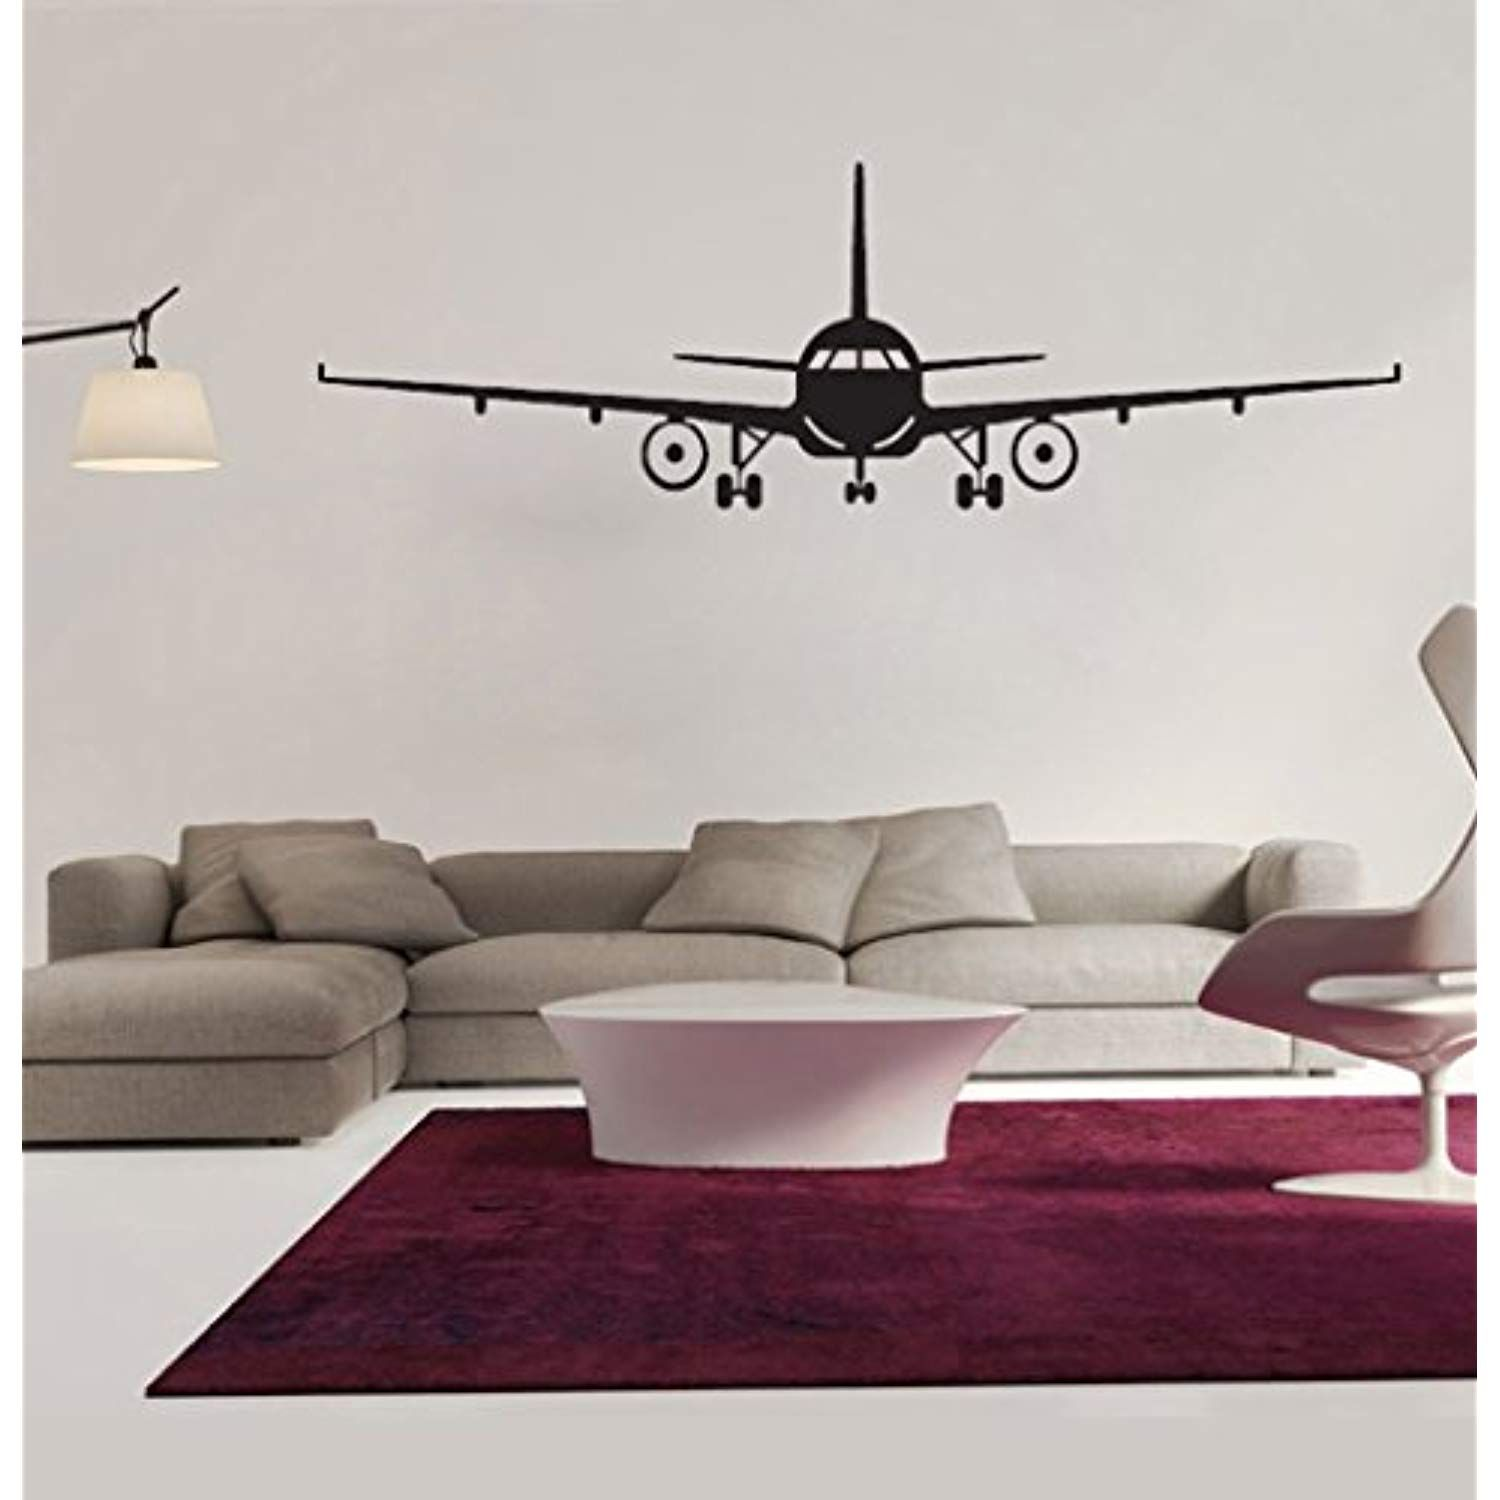 Bibitime Military Army Cargo Airplane Silhouette Sticker Decal Flying Pilots Home Decor L 51 97 X 16 54 I Wall Decor Stickers Airplane Wall Airplane Wall Art [ 1500 x 1500 Pixel ]